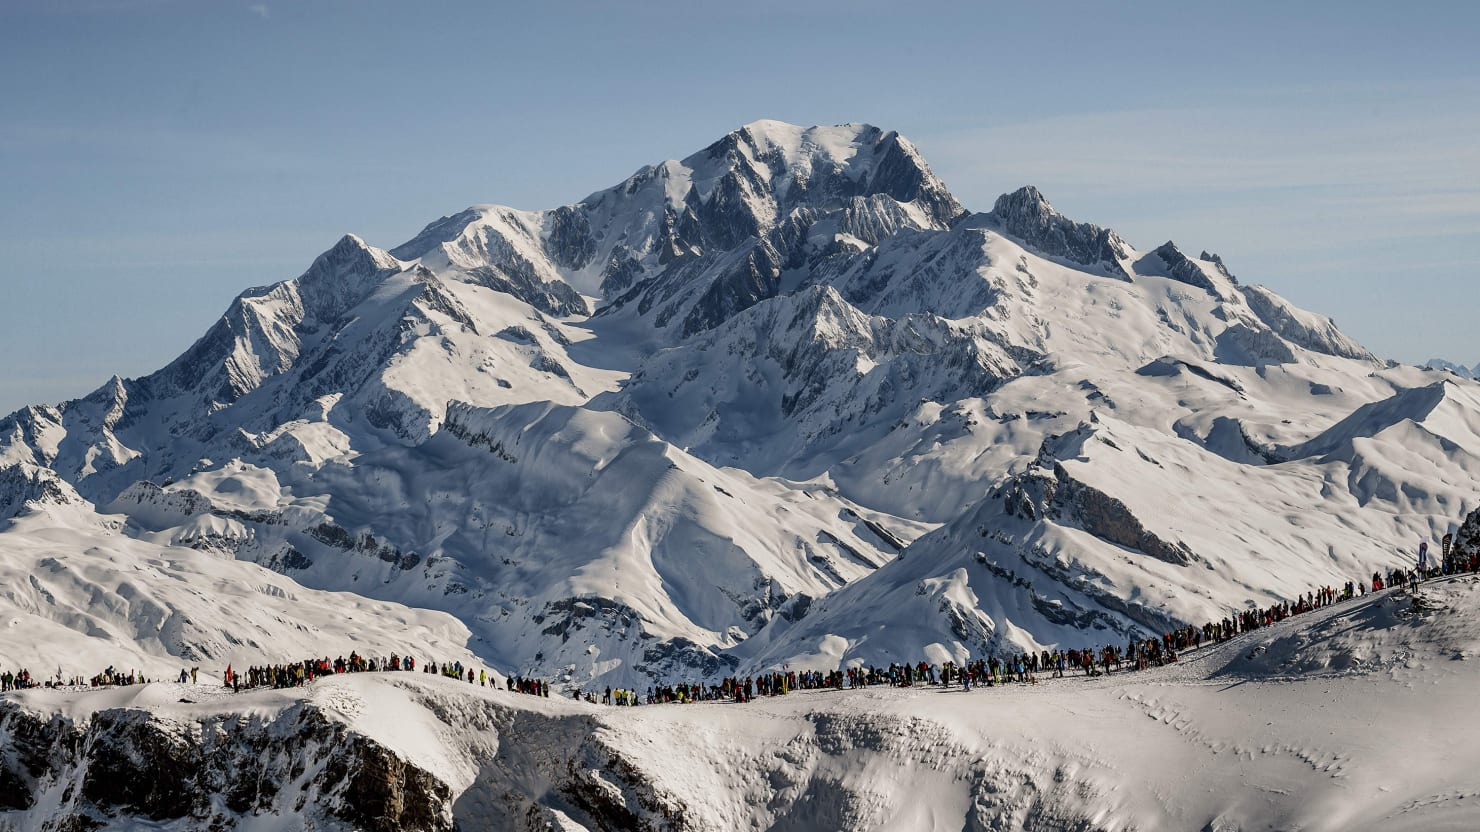 Italy and France Prepare for Imminent Collapse of Mont Blanc Glacier